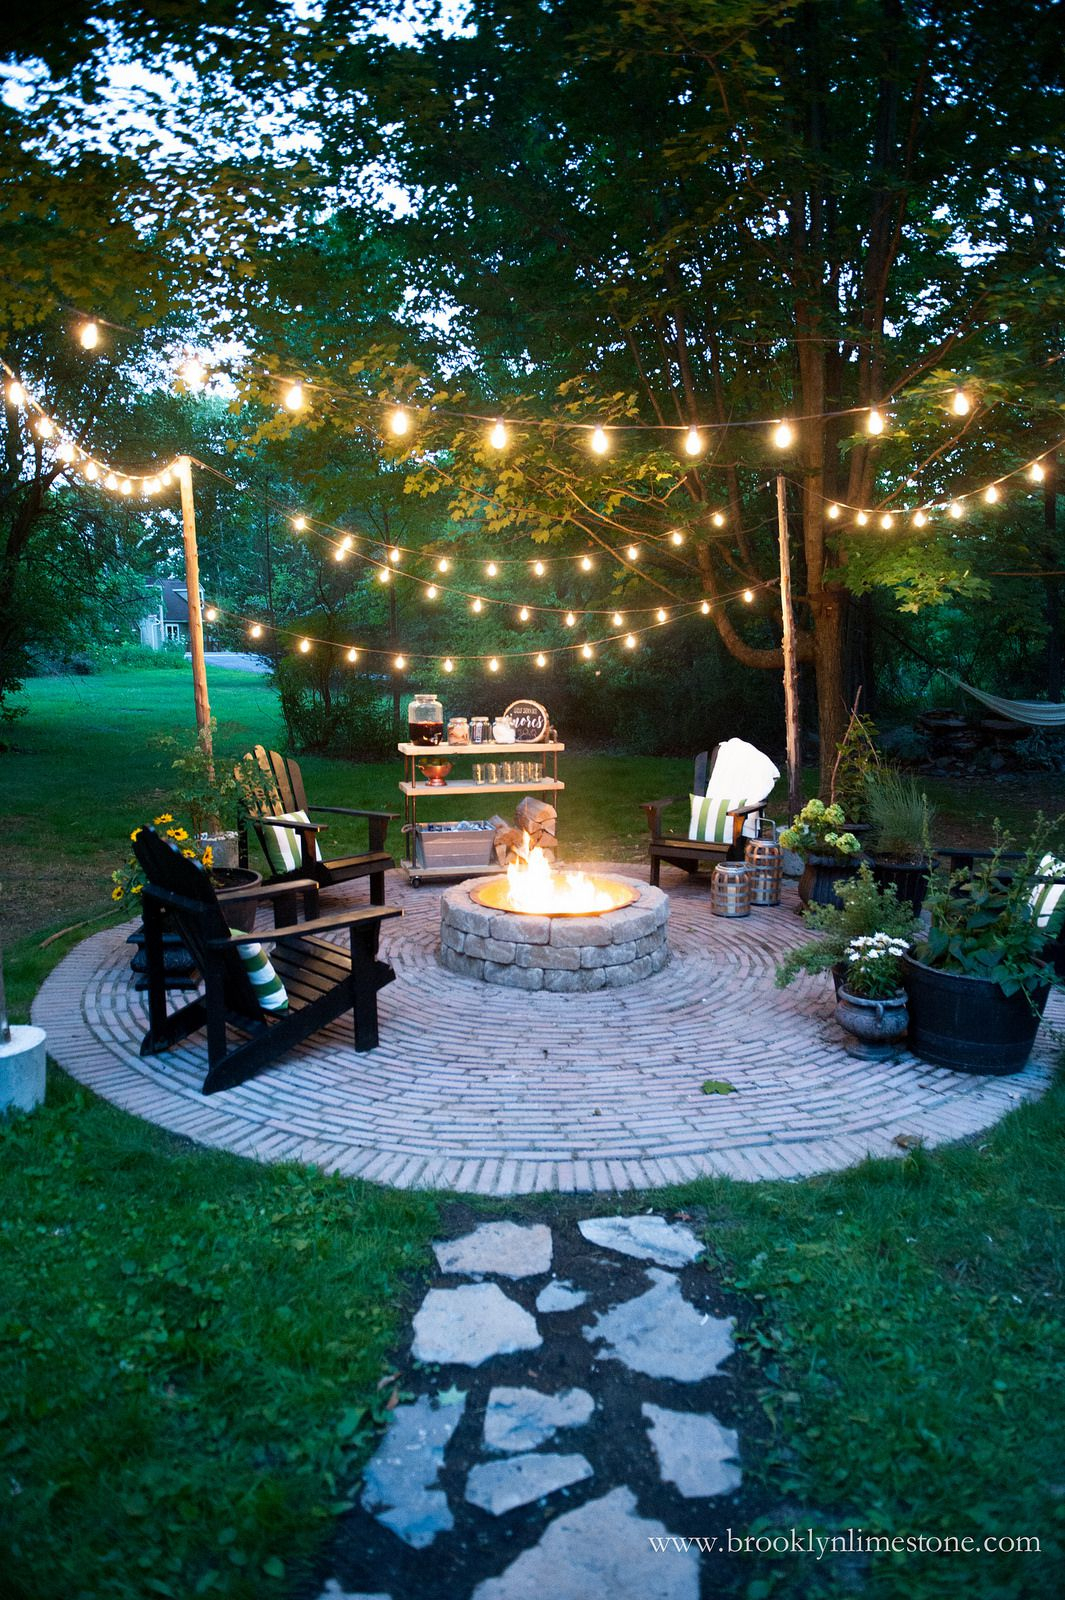 25 Backyard Lighting Ideas How To Hang Outdoor String Lights regarding 15 Clever Ways How to Makeover Backyard String Lighting Ideas